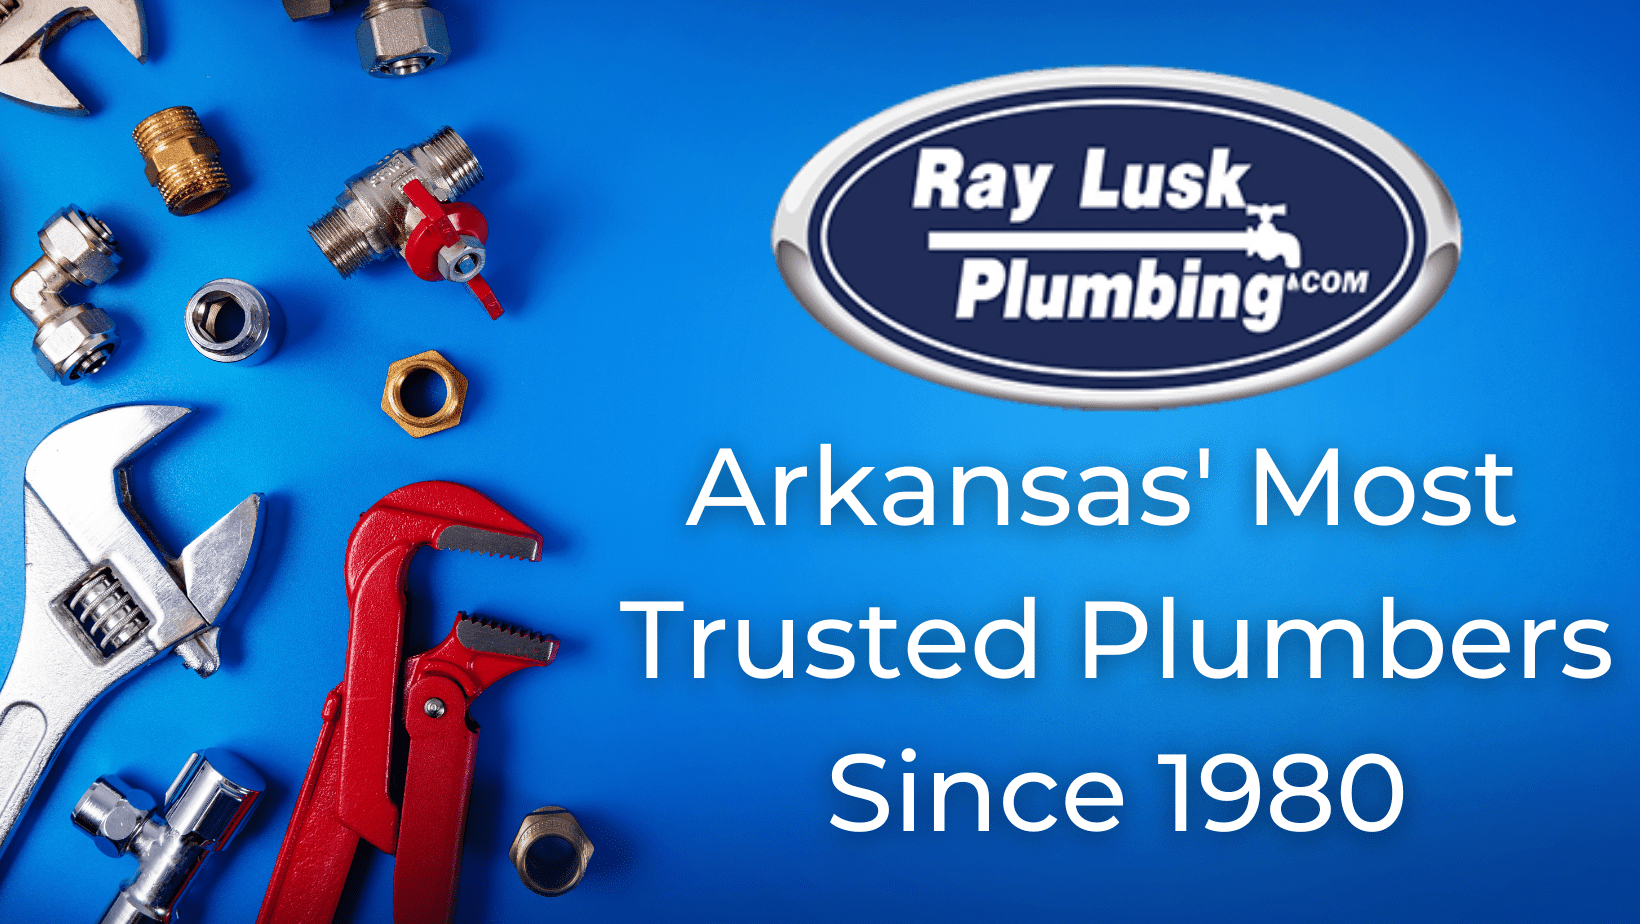 """Image text reads: """"Arkansas Most Trusted Plumbers Since 1980"""""""